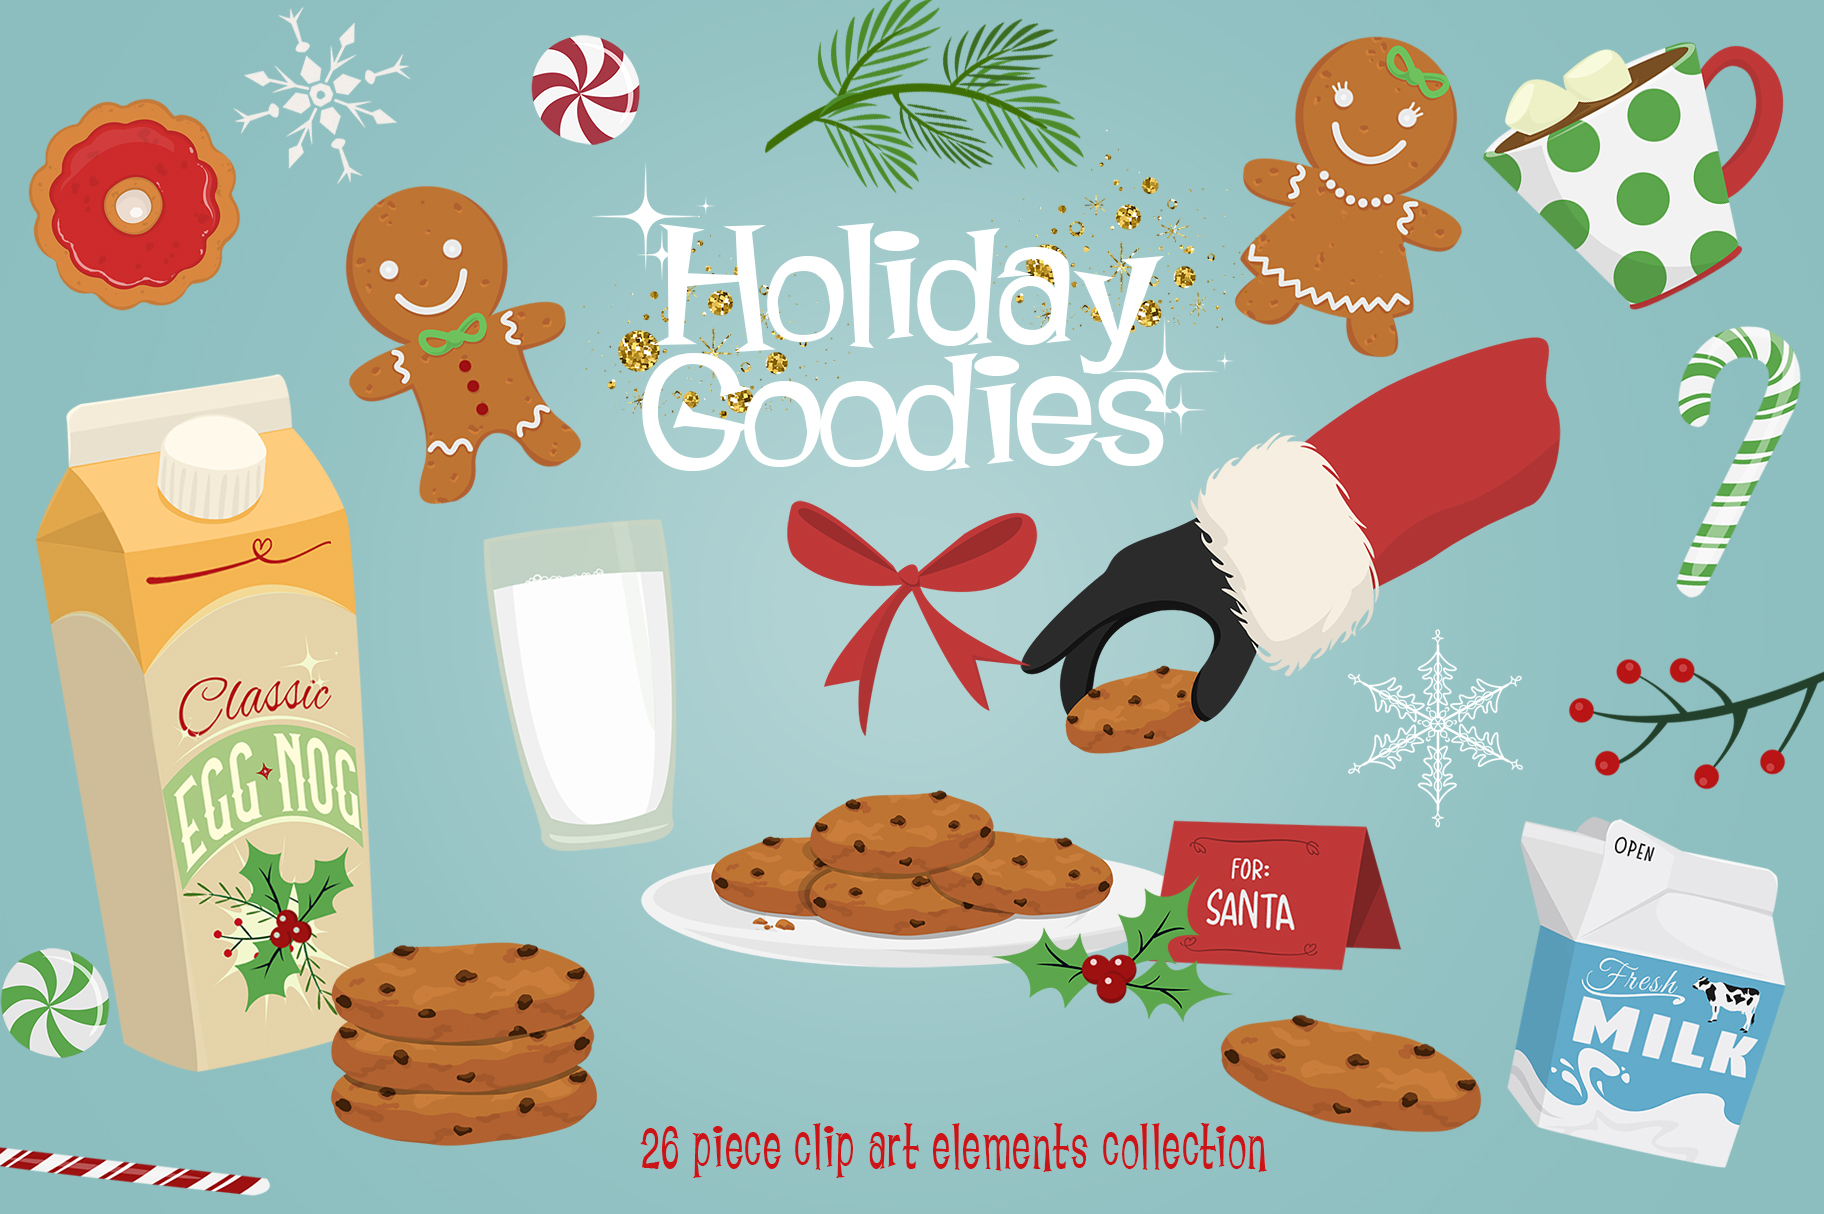 Holiday Goodies Cookies & Milk example image 1